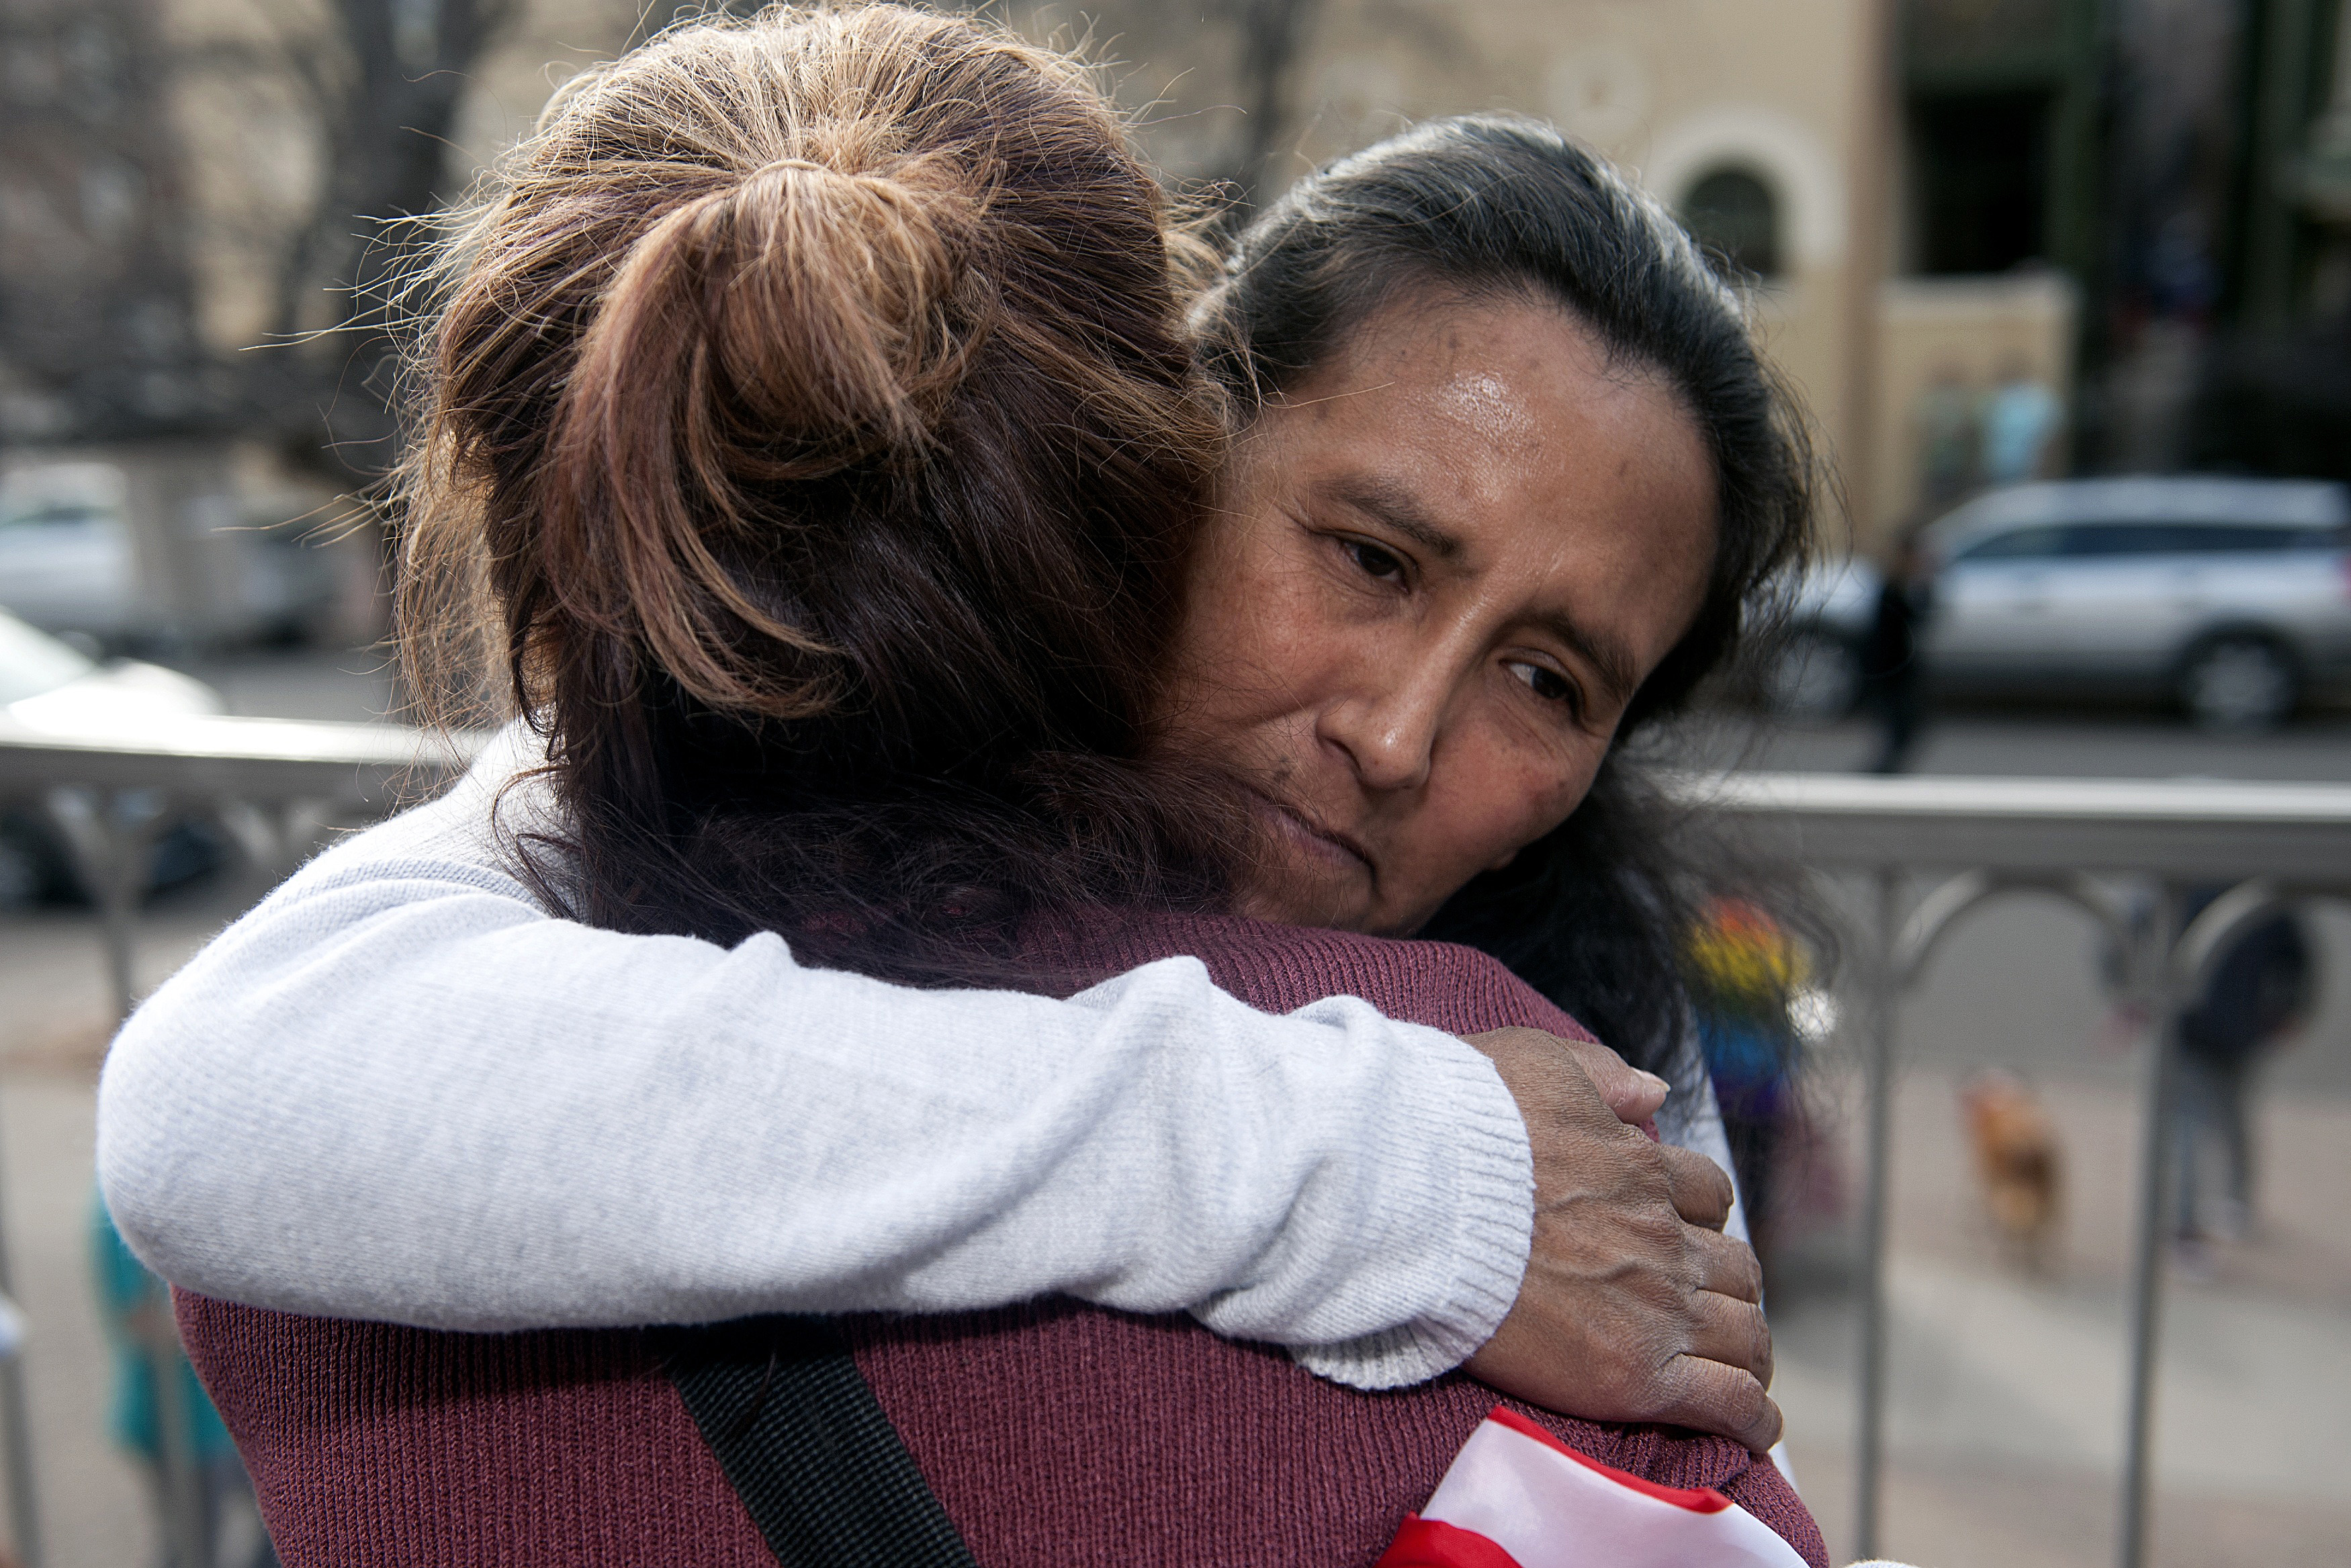 Jeanette Vizguerra, an undocumented Mexican mother of three US born children, embraces a supporter after speaking to the gathered crowd outside the First Unitarian Church in Denver, Colorado on February 18, 2017.<br /><br /><br /> Vizguerra has been living in the church basement since February 15th when she avoided a scheduled meeting with US Immigration and Customs Enforcement officials for fear of immediate detention and deportation. It is uncommon for US authorities to enter places of worship, schools and hospitals to deport undocumented immigrants.</p><br /><br /> <p> / AFP / Jason Connolly        (Photo credit should read JASON CONNOLLY/AFP/Getty Images)